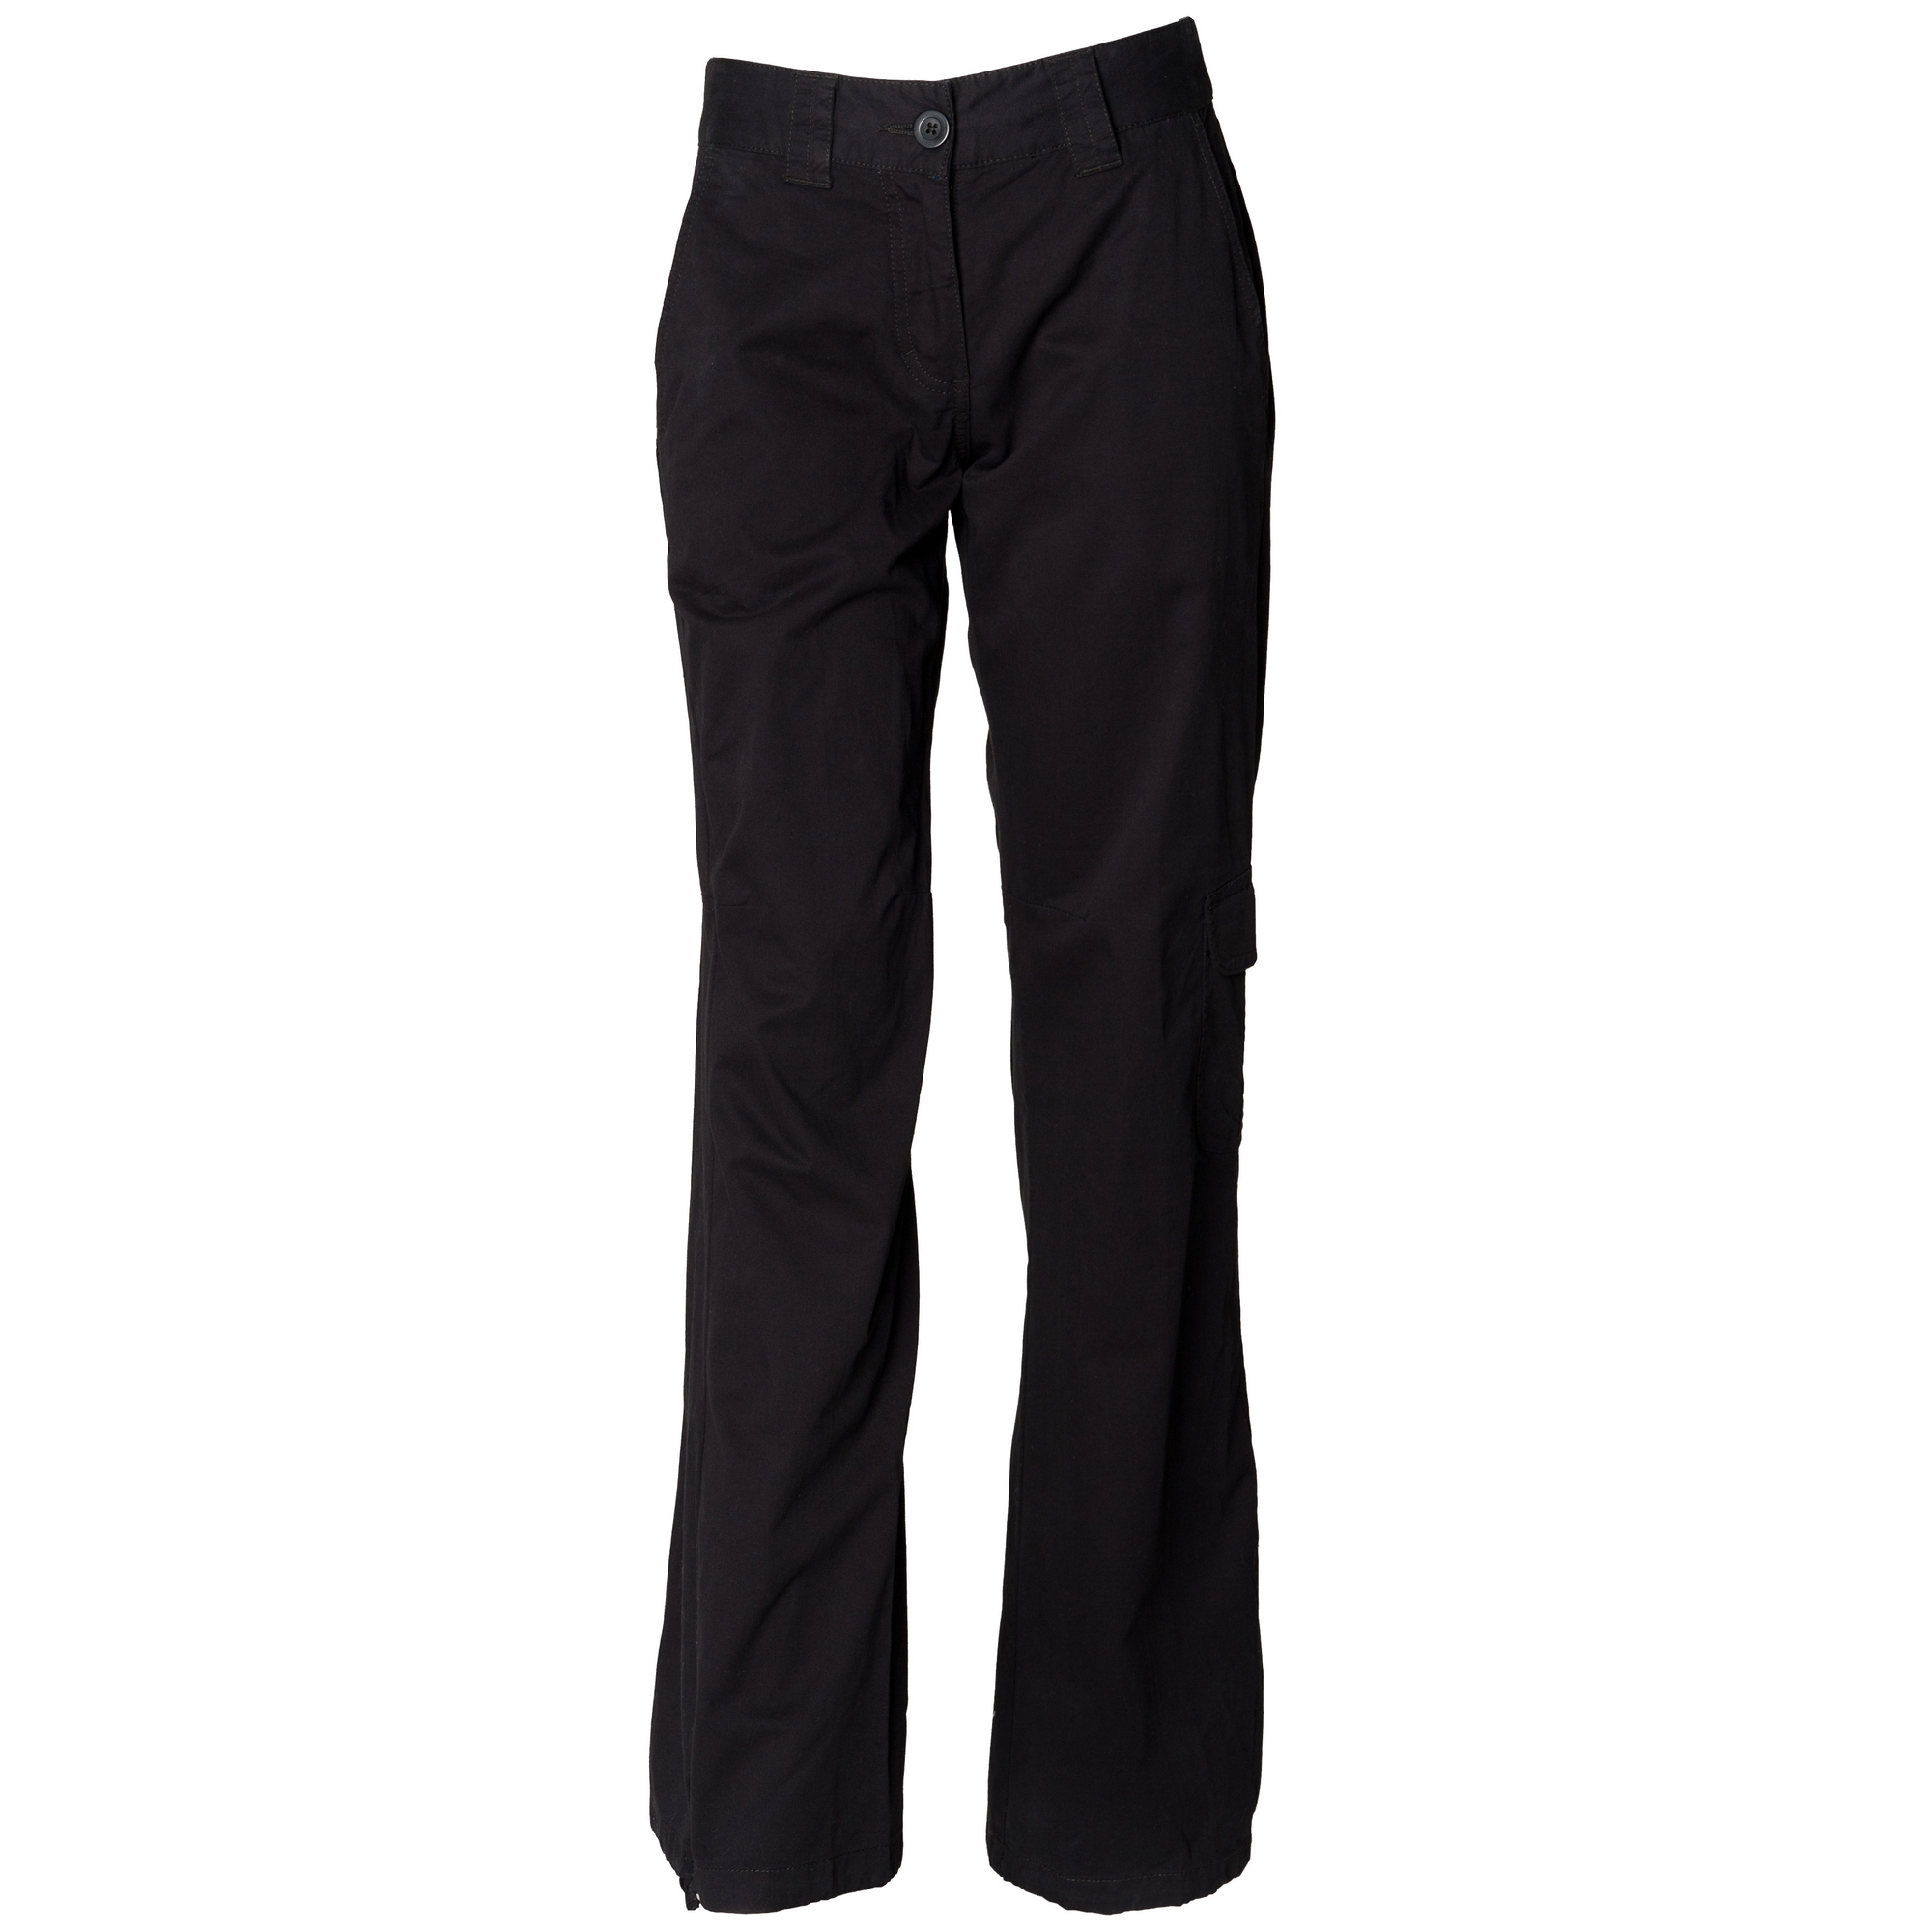 Skinni-Fit-Womens-Ladies-100-Cotton-Cargo-Trousers-Black-Sand-S-M-L